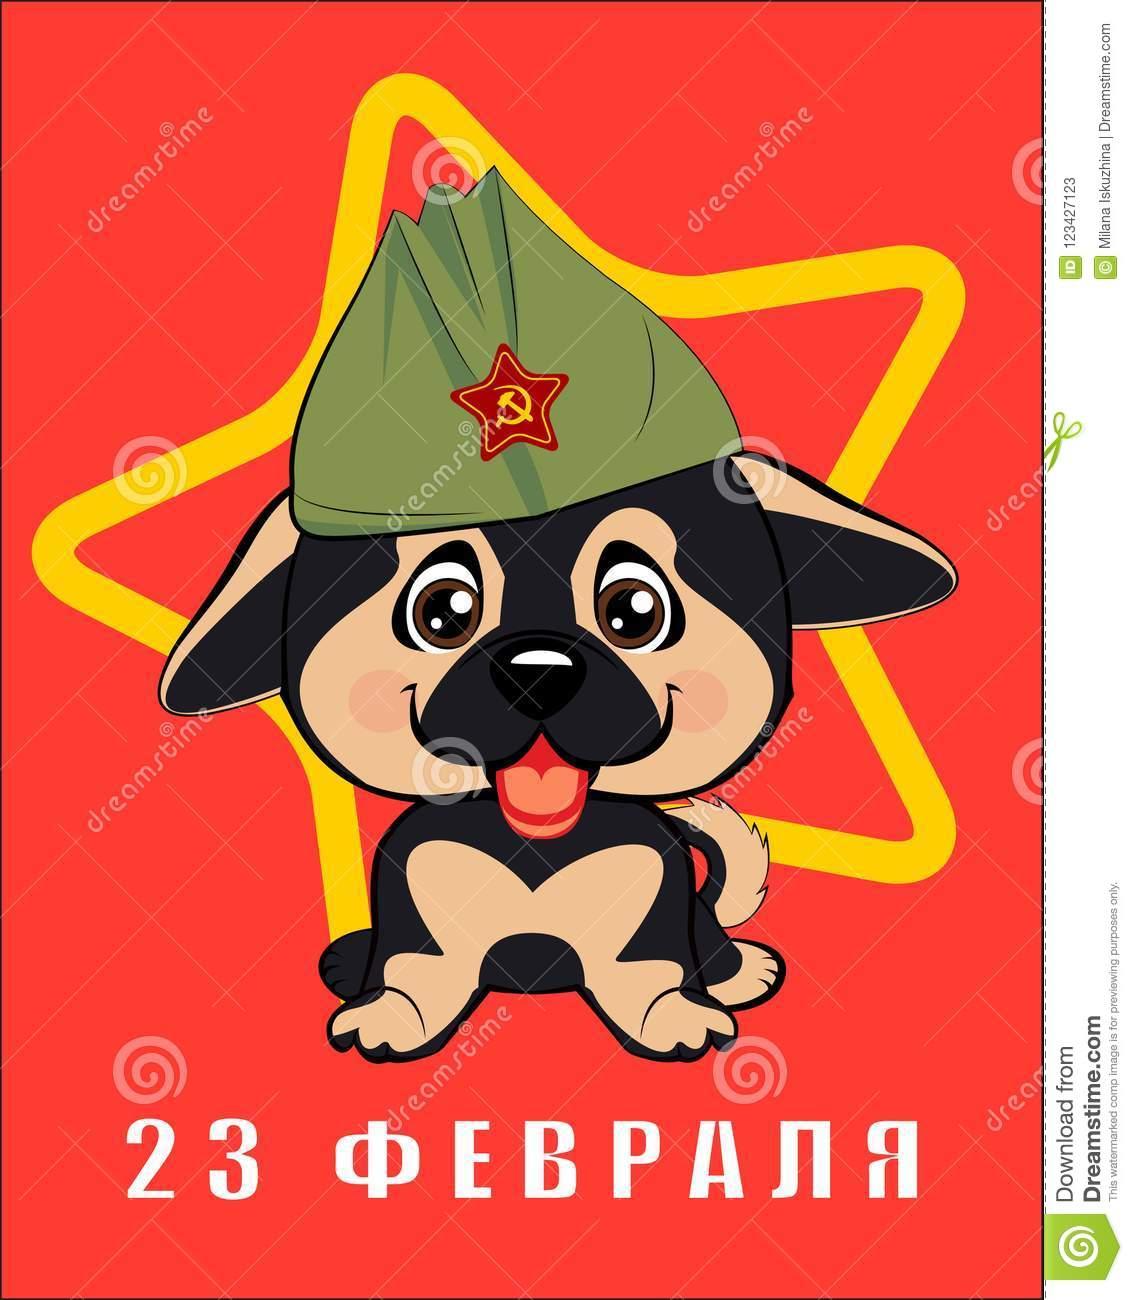 Greeting Card With A Puppy Of A German Shepherd In A Green Hat With